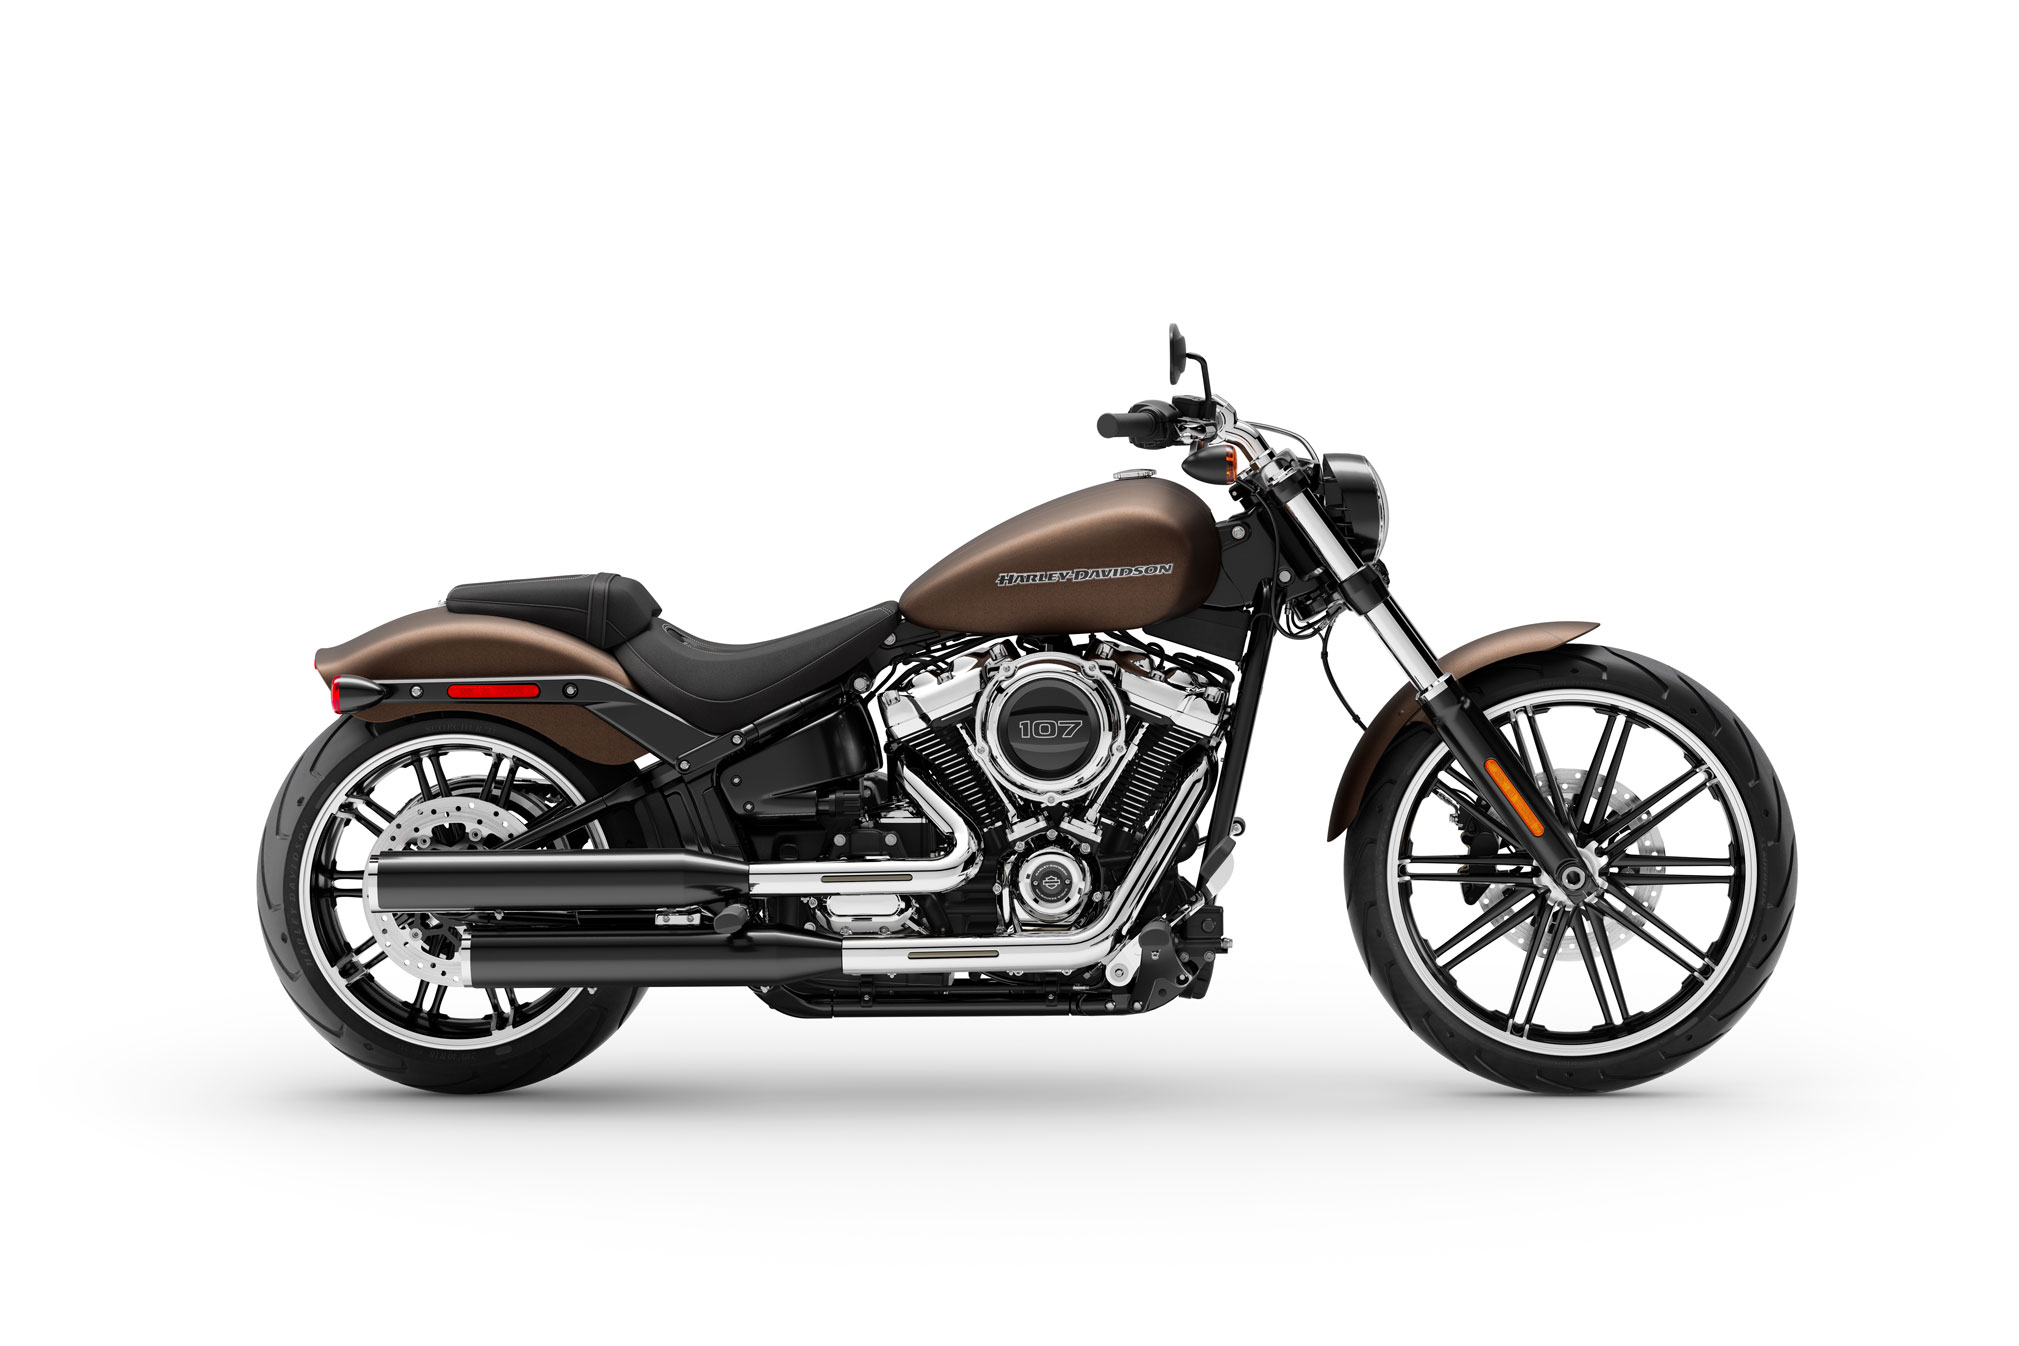 2019 Harley-Davidson Breakout Guide • Total Motorcycle